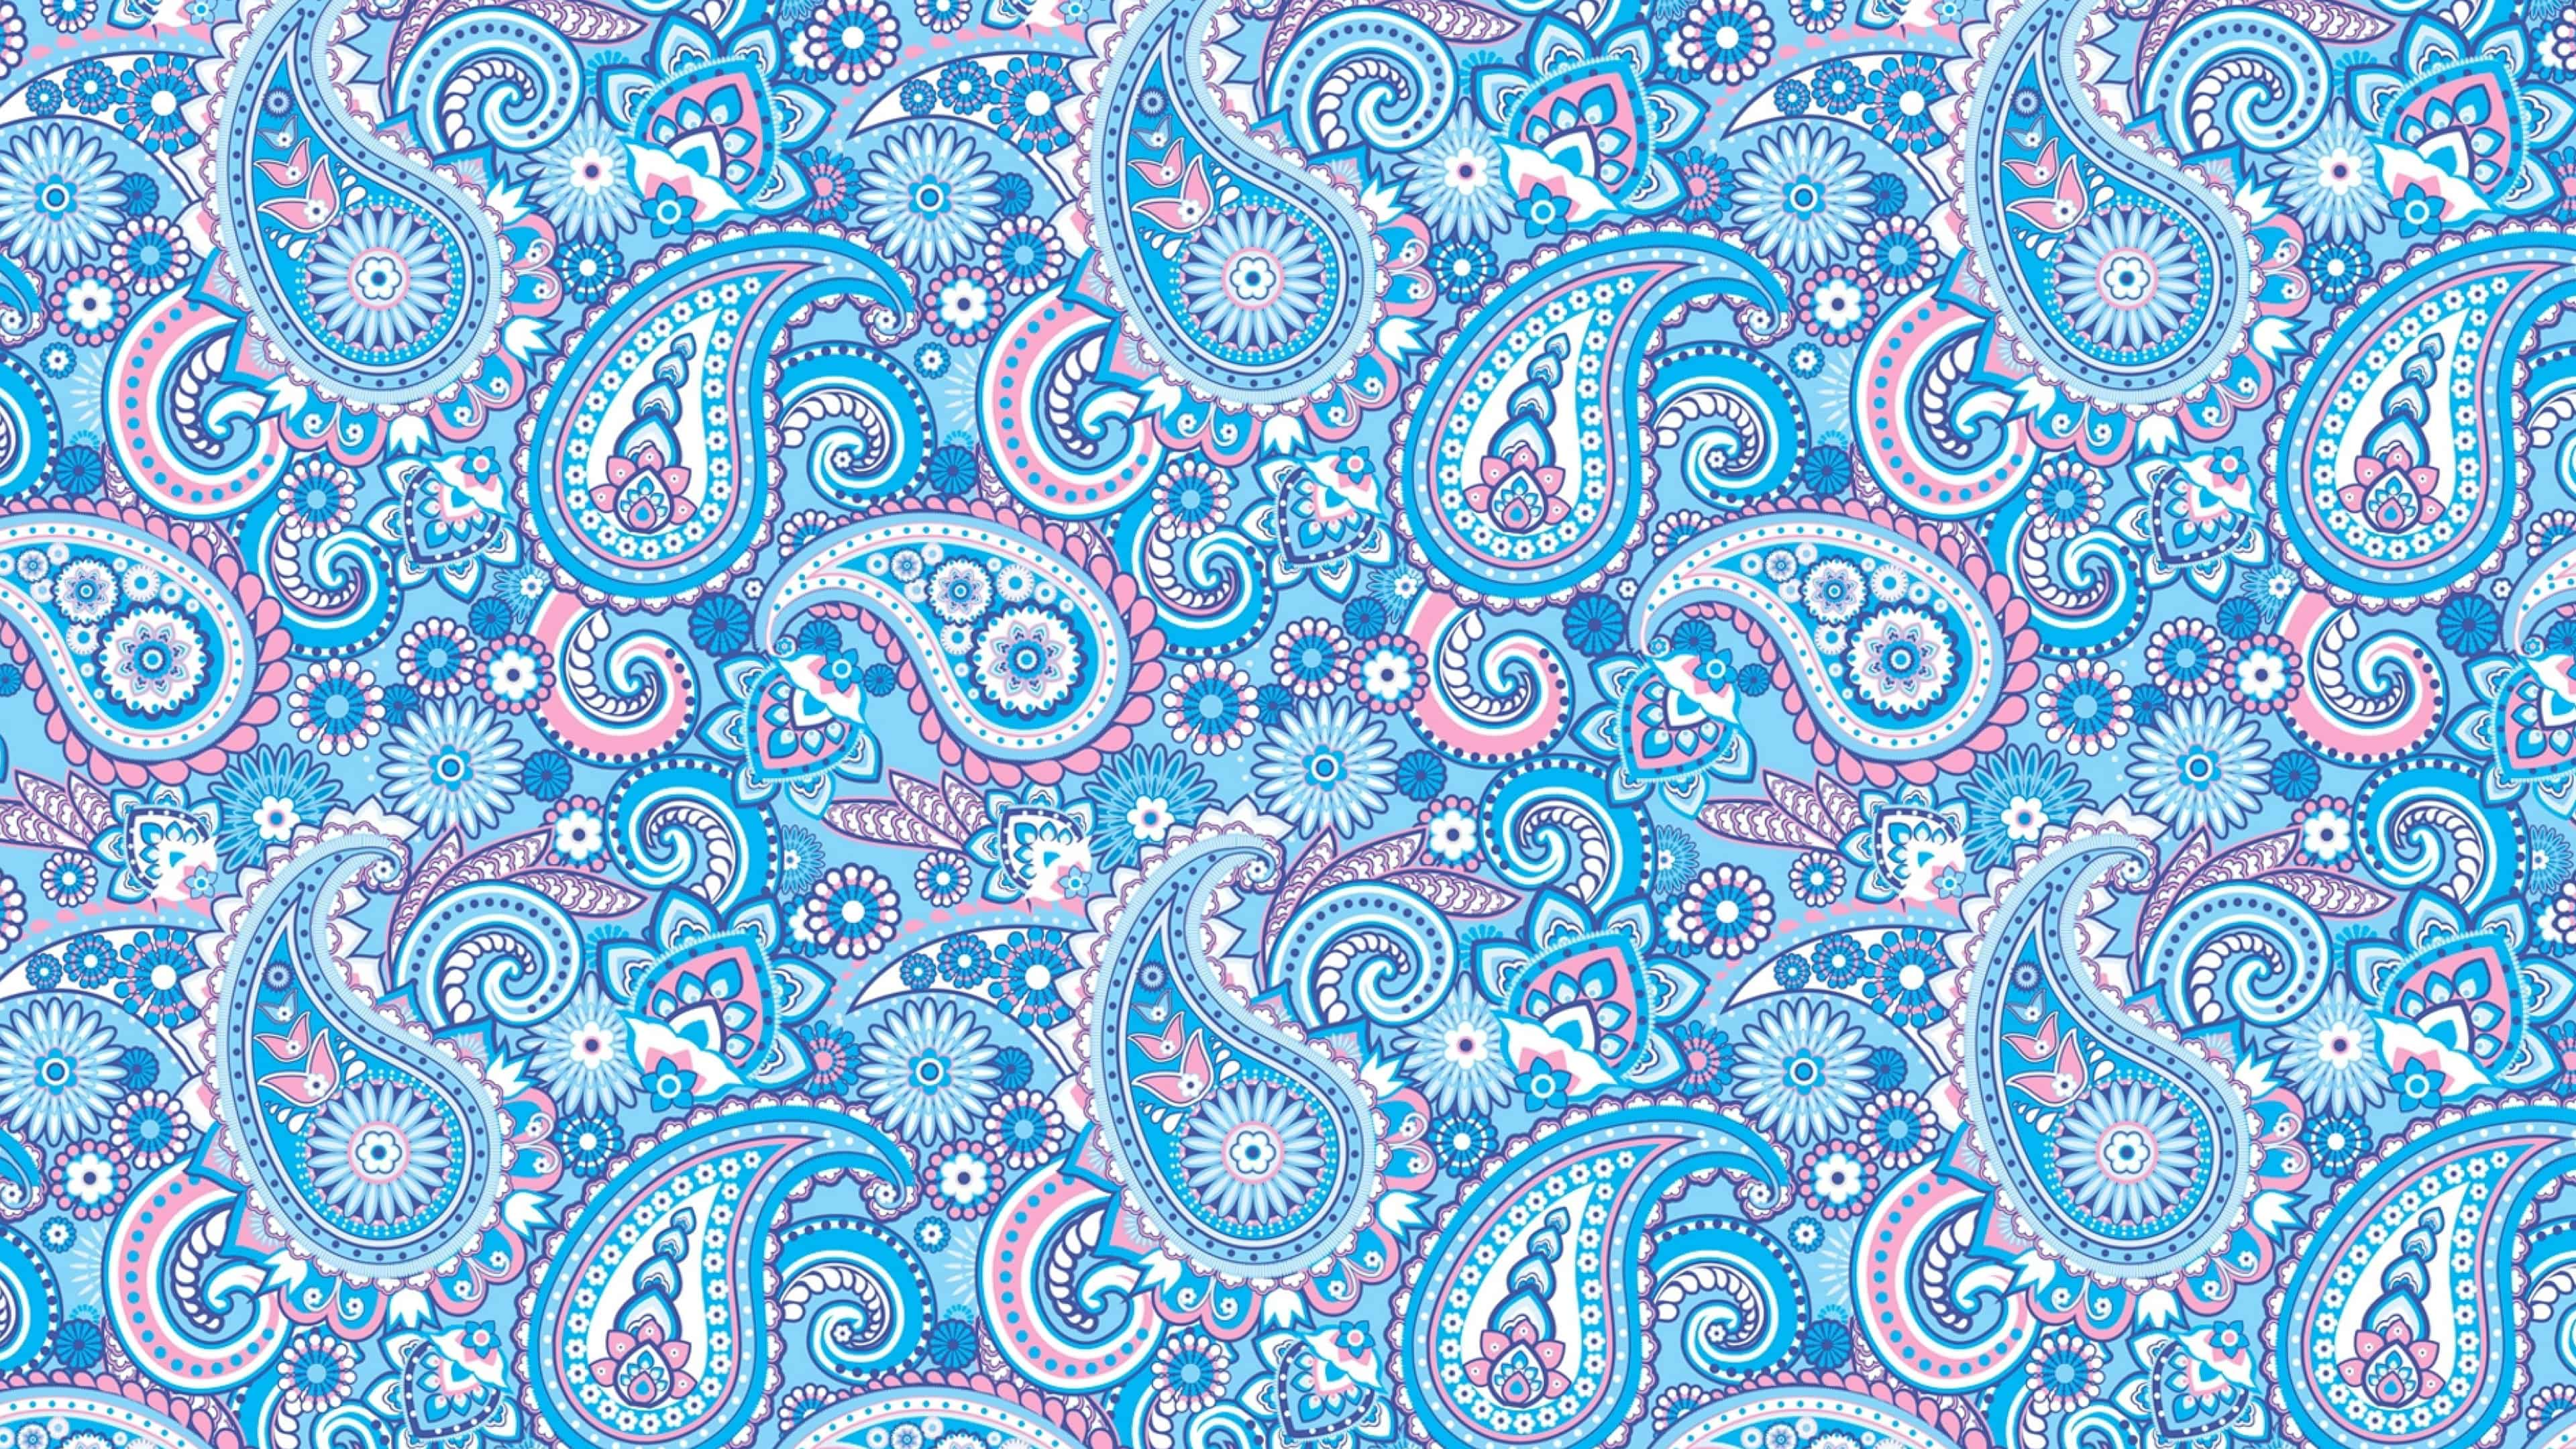 paisley pattern blue and pink uhd 4k wallpaper